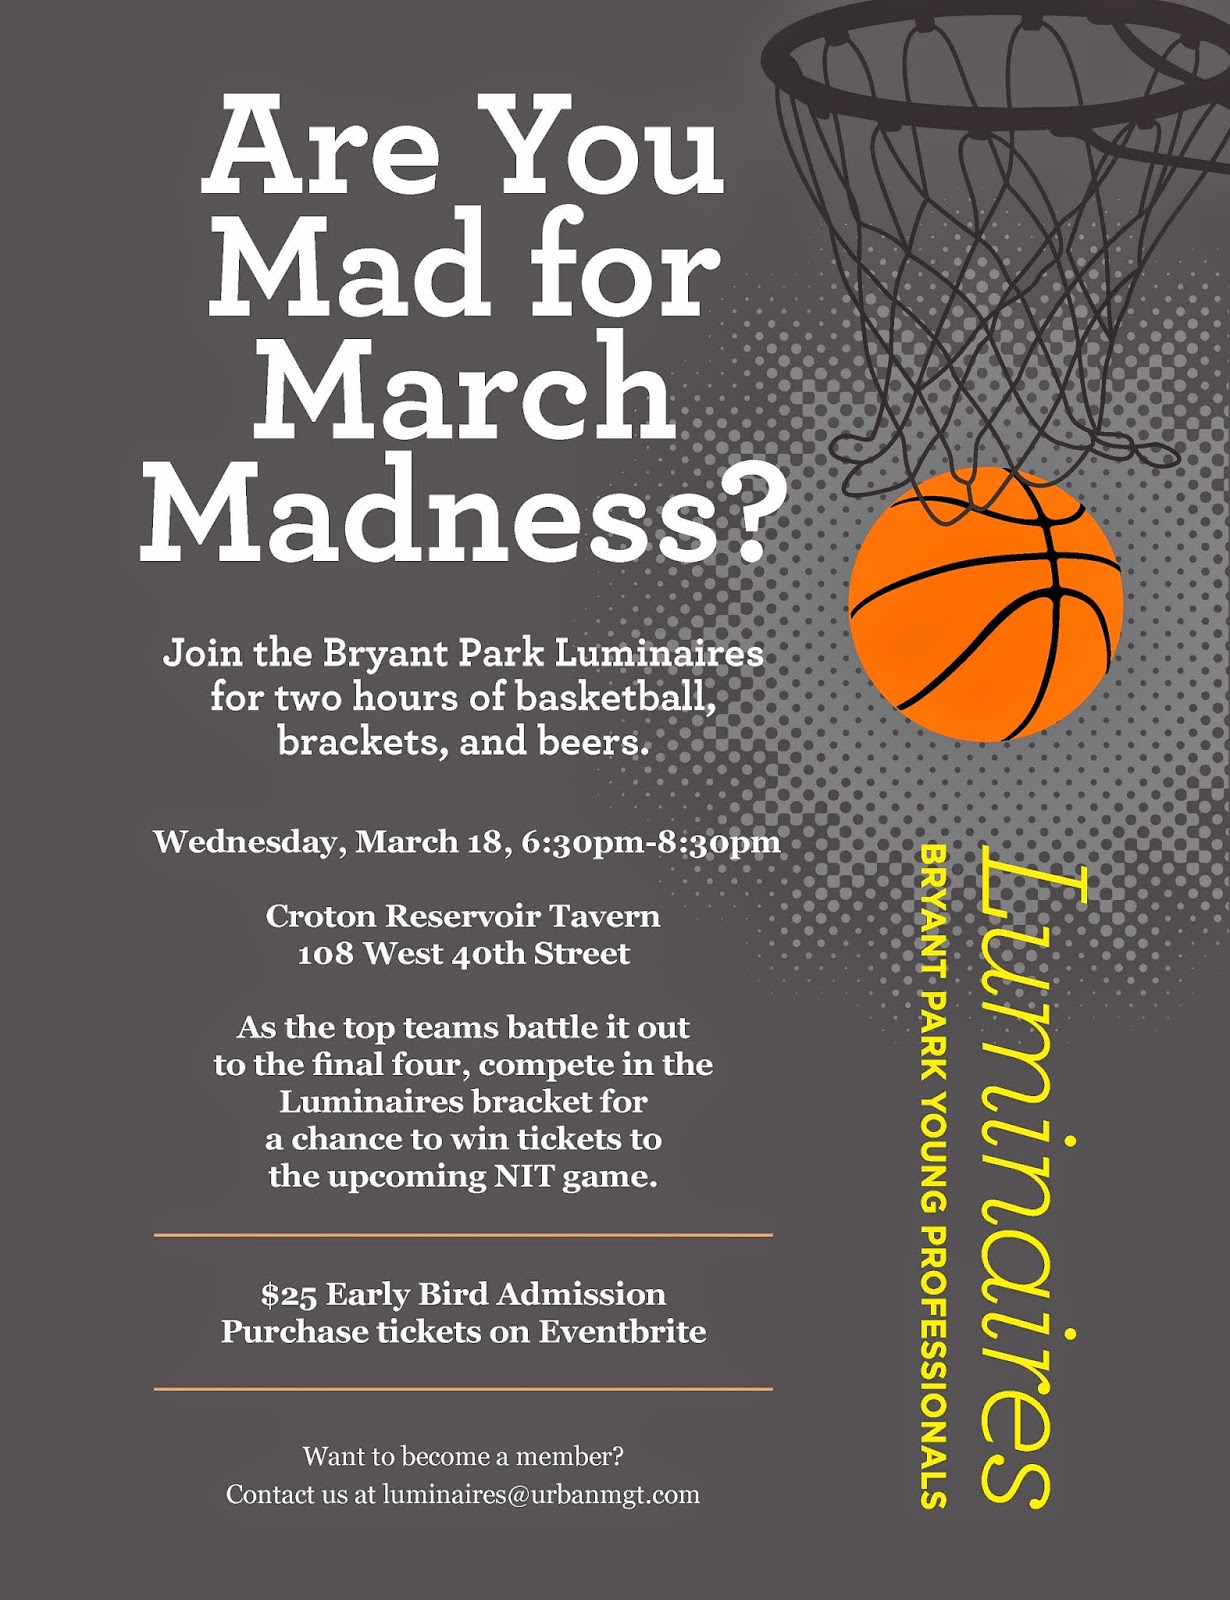 Bryant Park Blog: Are You Mad for March Madness?